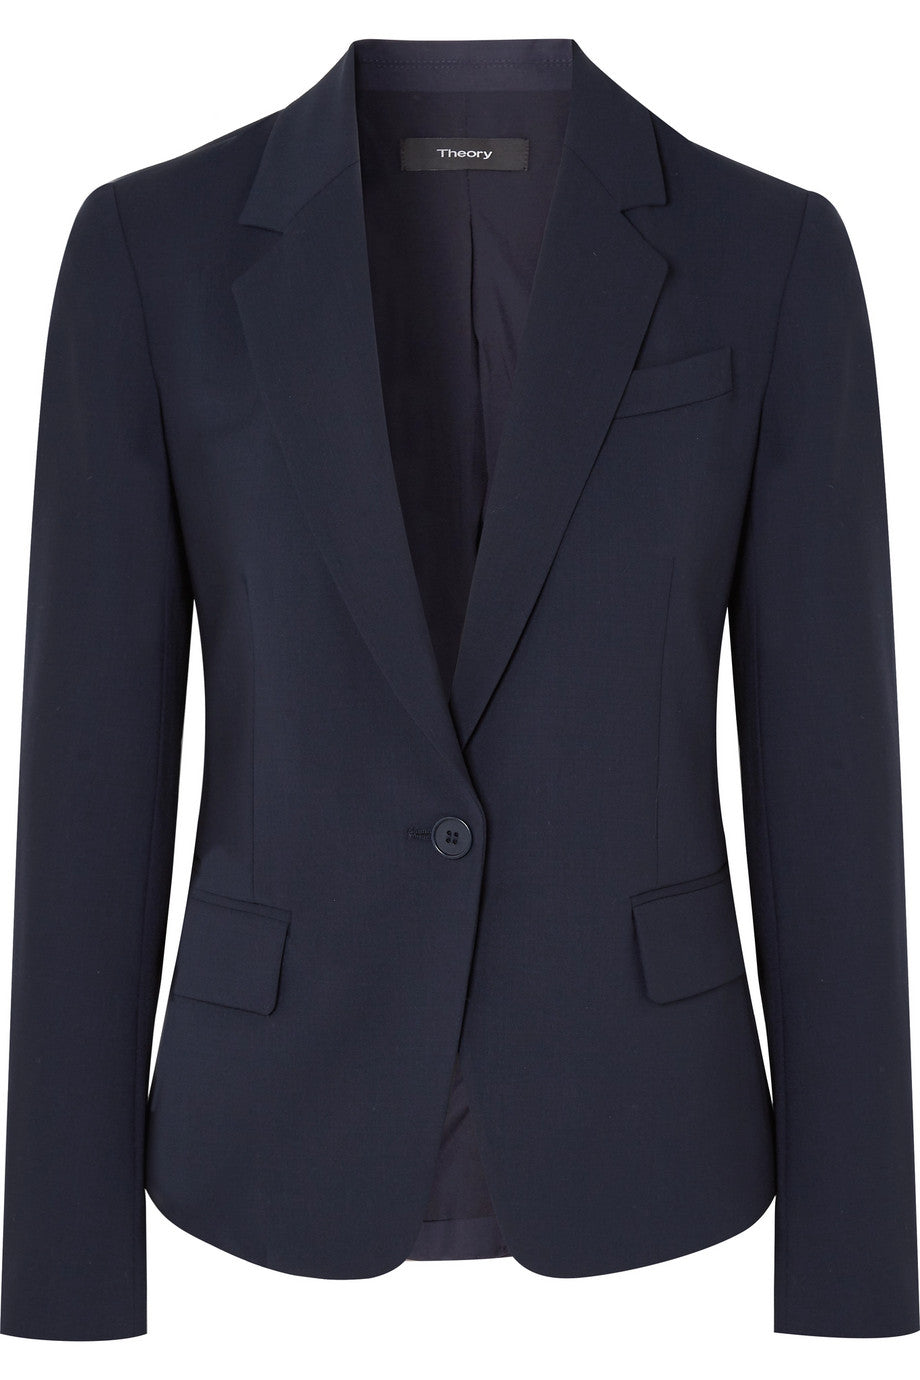 Theory - Gabe wool navy blue blazer featured in Capsule wardrobe on ownmuse.com